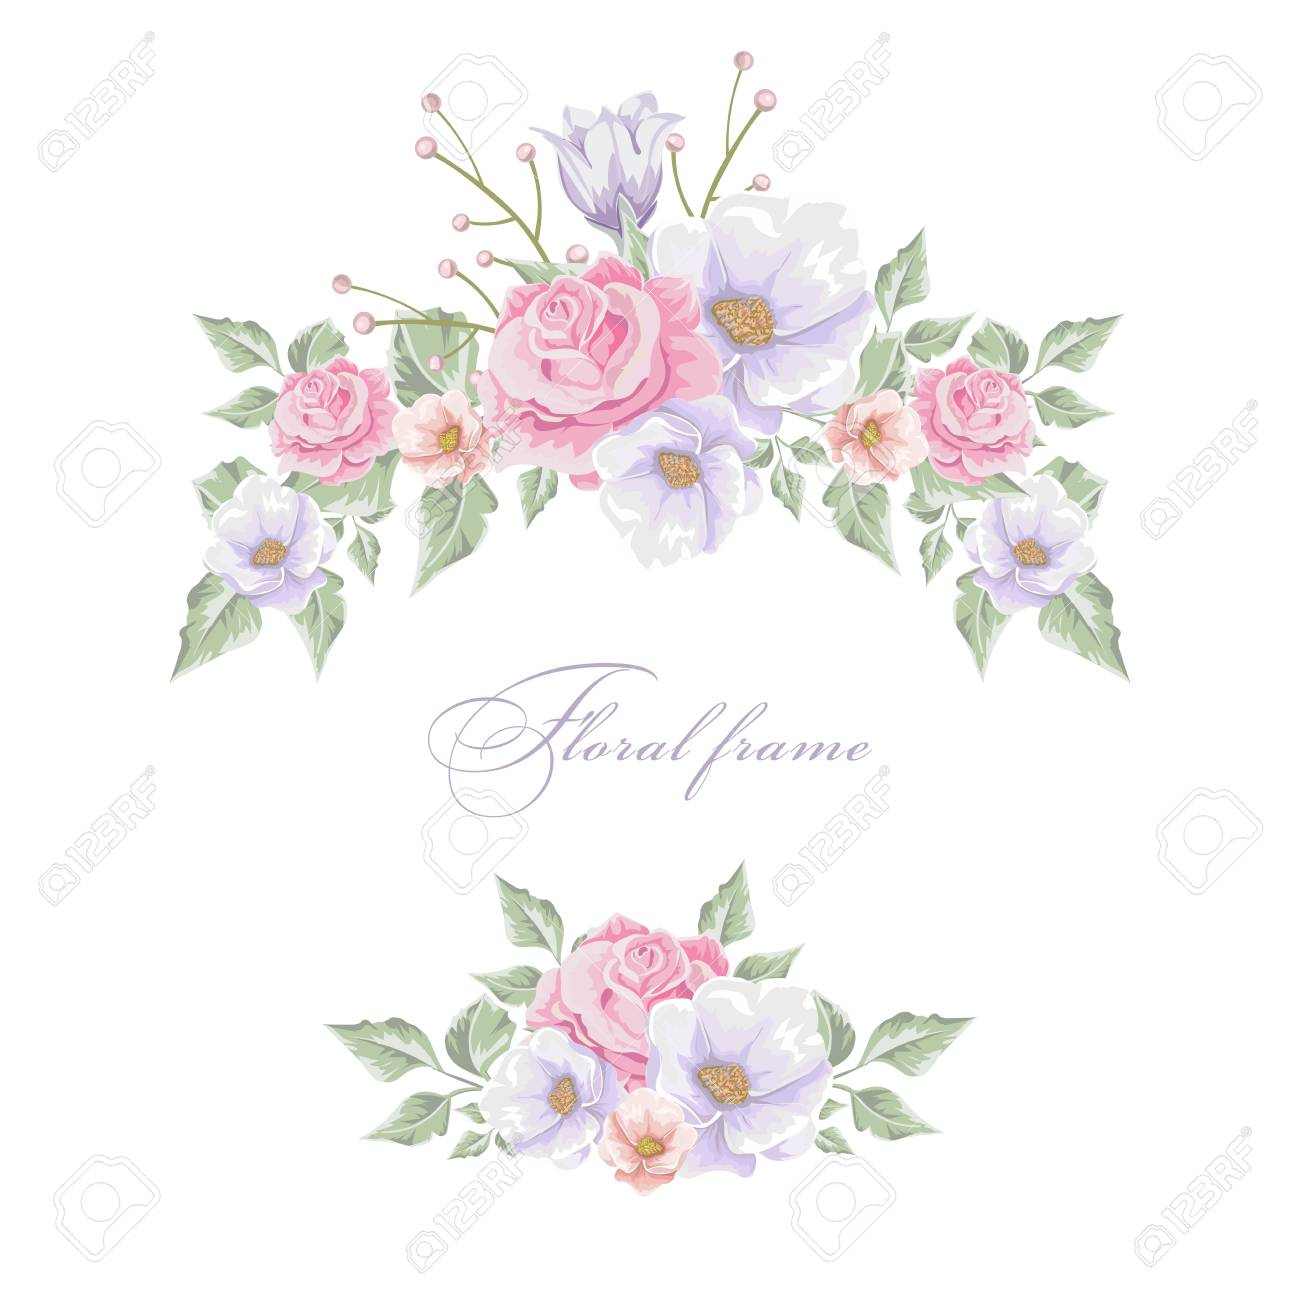 Bouquets Of Flowers Frame Design Border Template. Royalty Free ...